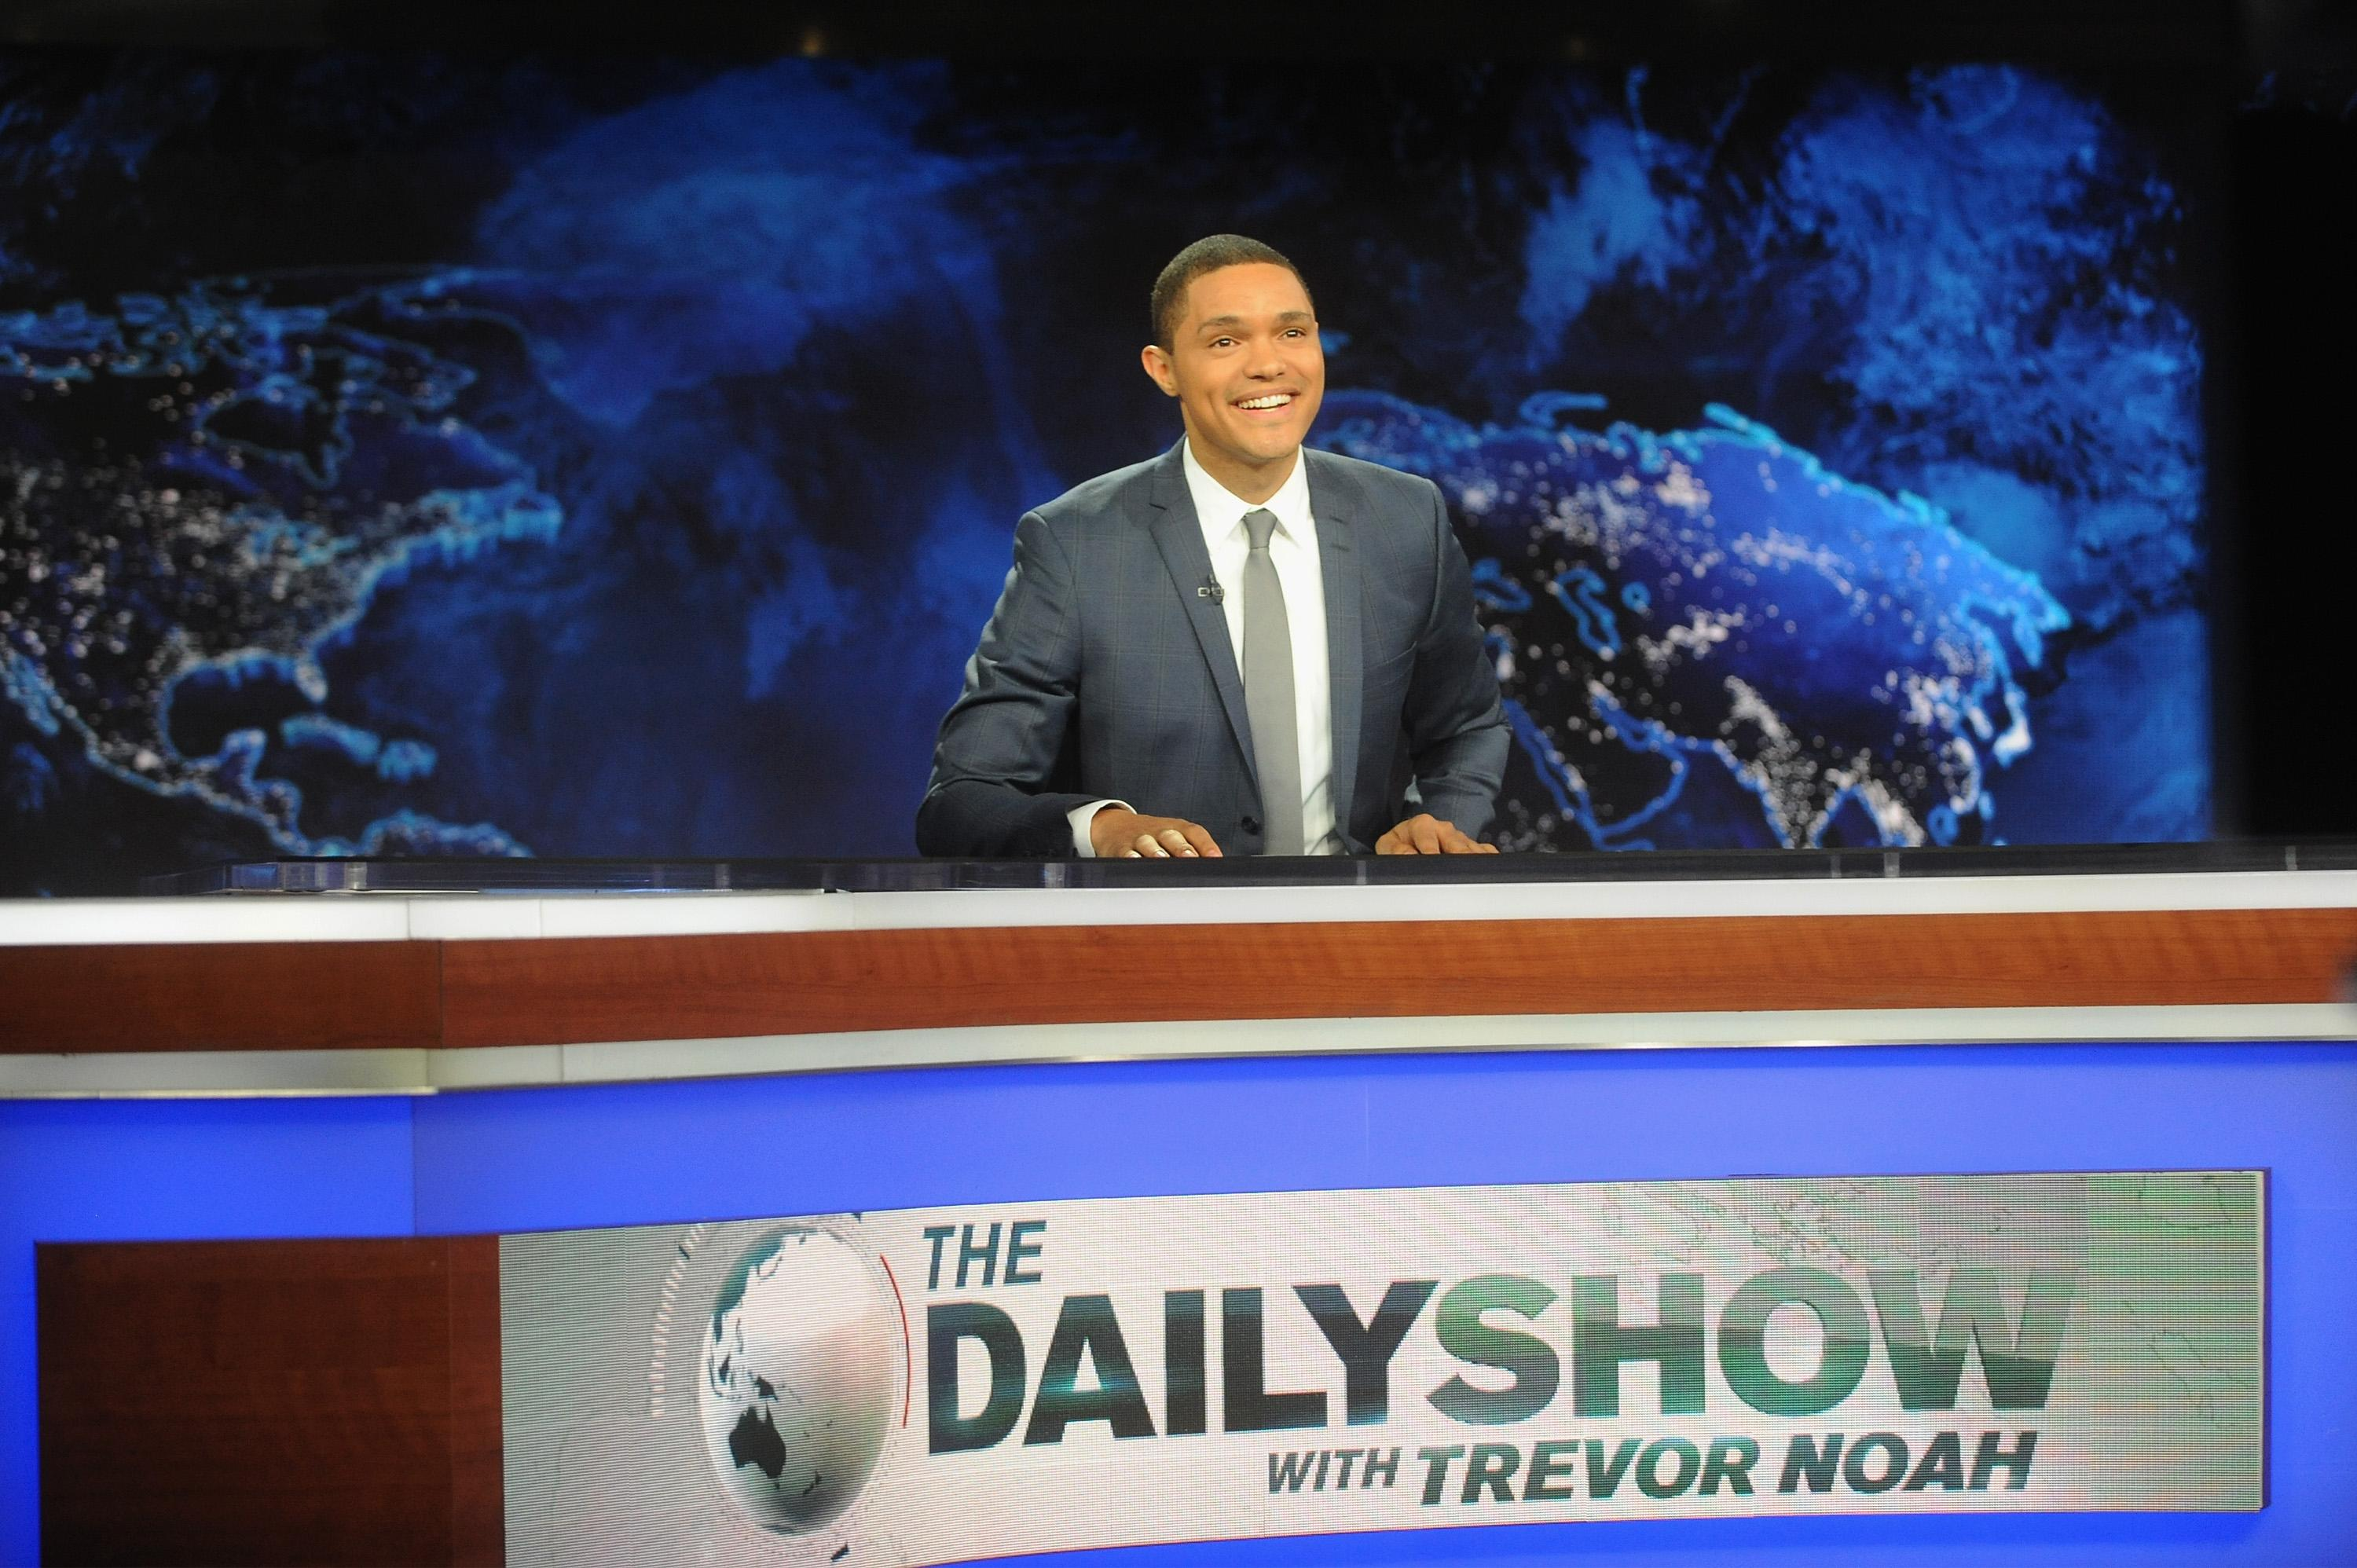 Trevor Noah First Week Hosting 'The Daily Show': 1.02M Viewers